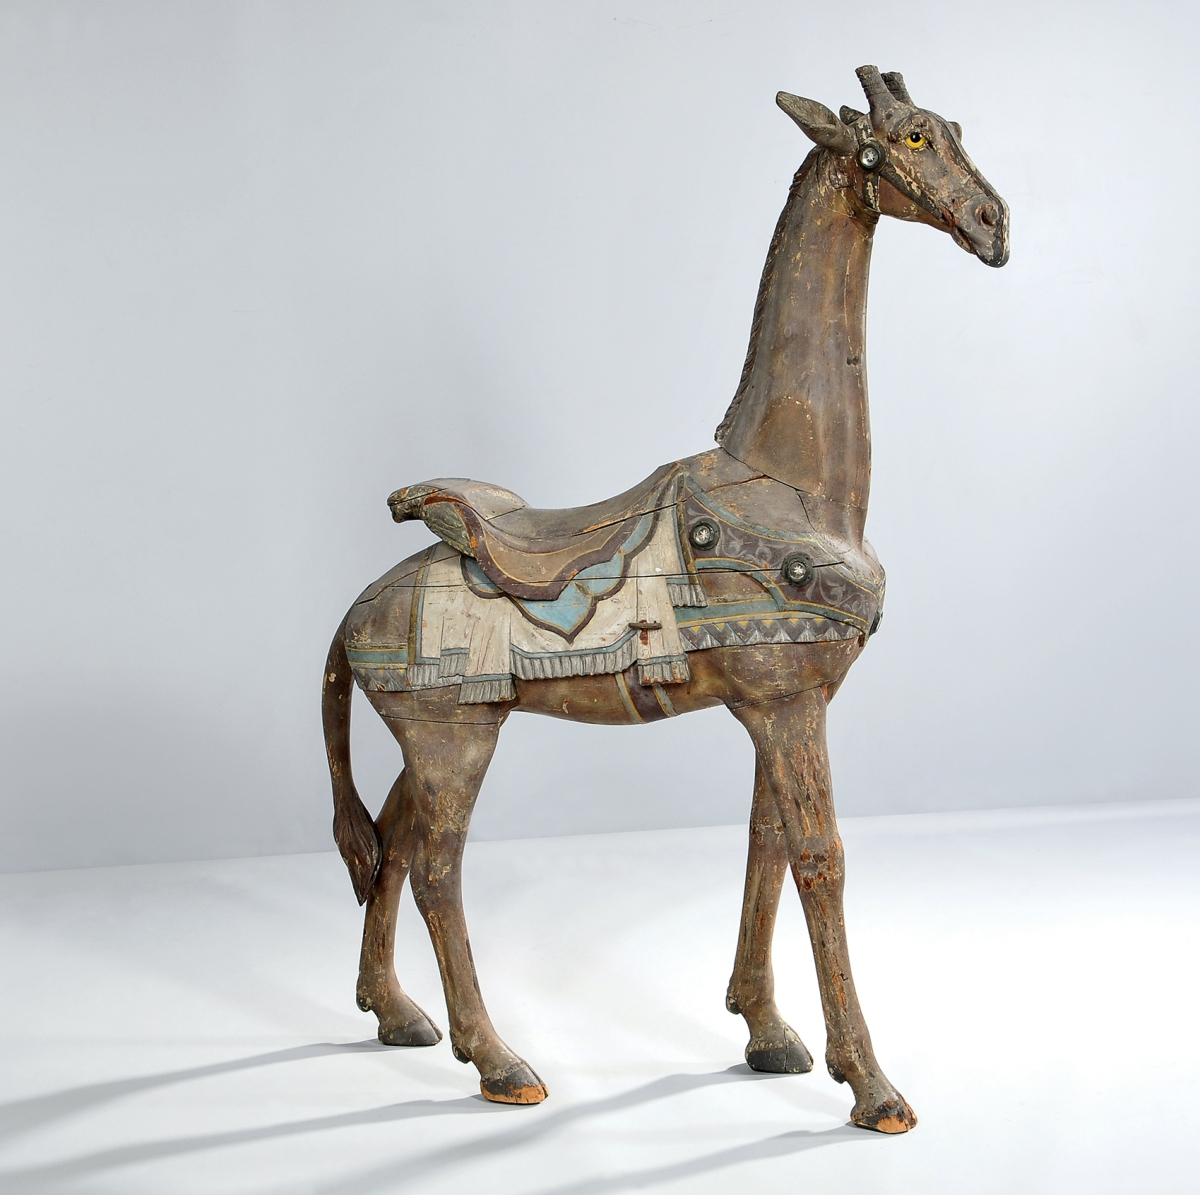 Achieving $61,500, the second highest price of the sale, this giraffe carousel figure retained its original surface. It was attributed to Daniel Muller of the Dentzel Company. In 2011, it sold for more than $100,000 at a Northeast auction.